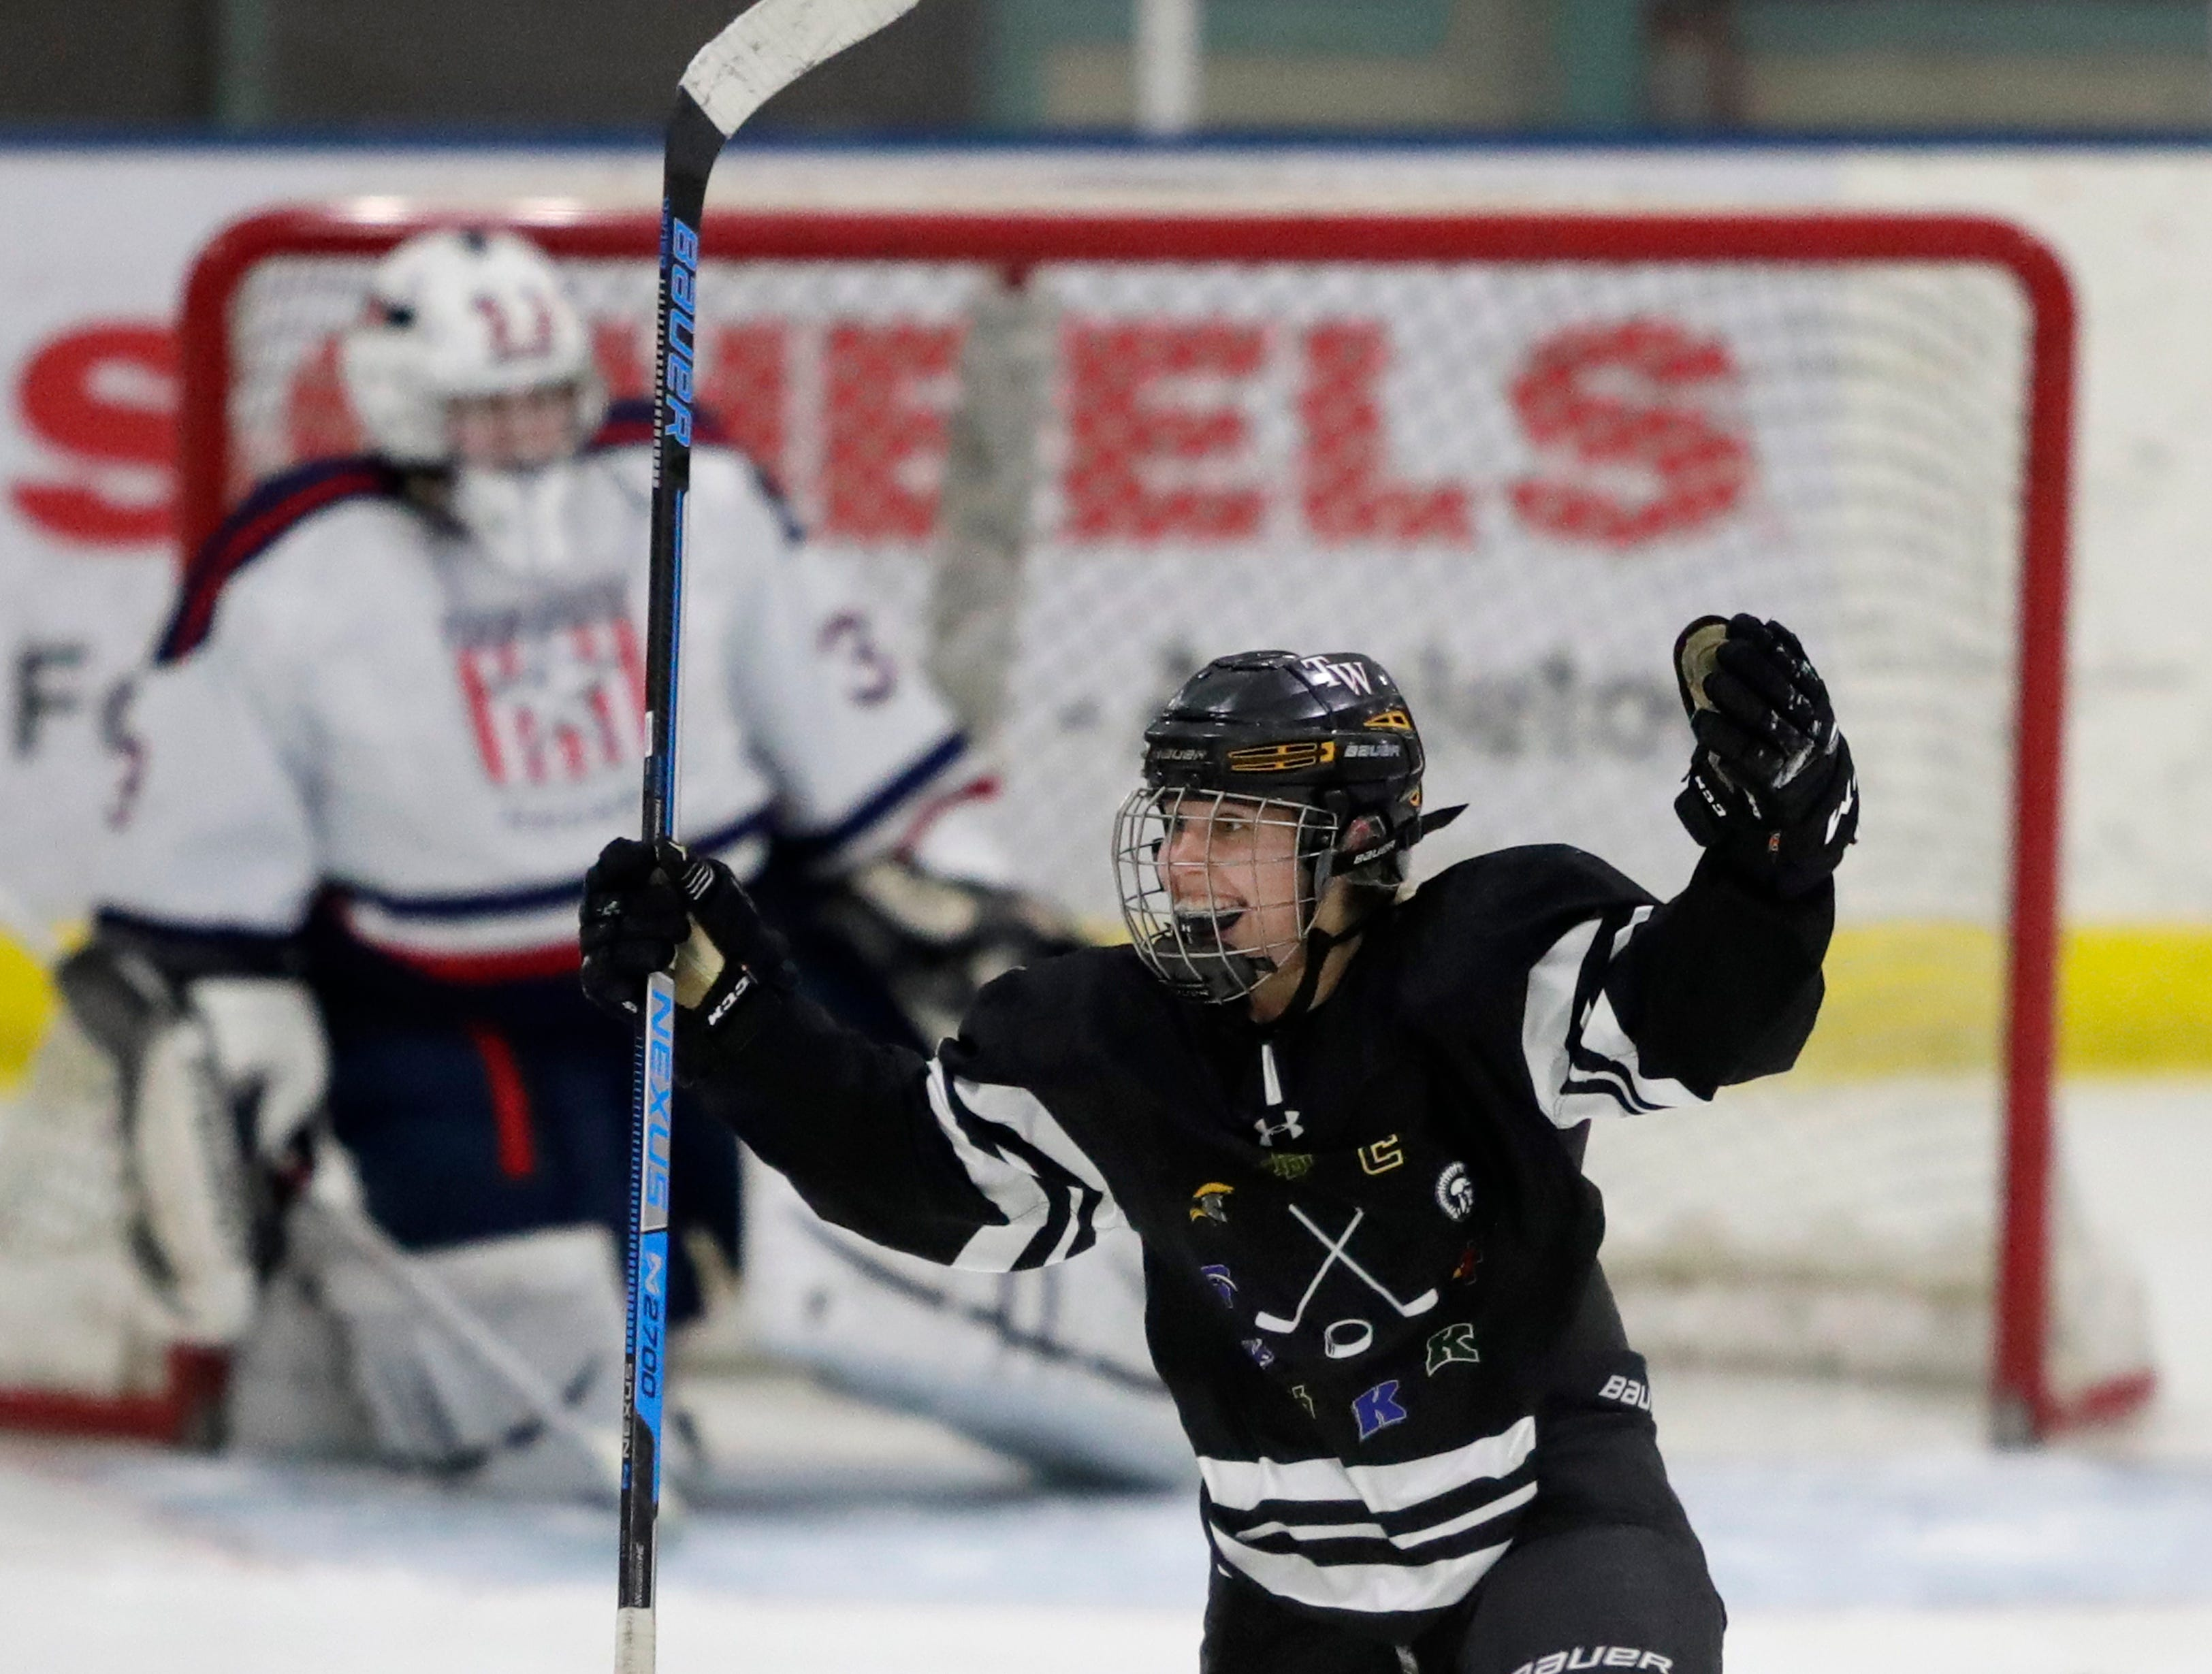 The Warbirds' Alyssa Heim (37) celebrates scoring a goal against Fox Cities Stars' Hattie Berndt (33) during their girls hockey game Thursday, January 10, 2019, at Tri-County Ice Arena in Fox Crossing, Wis. 